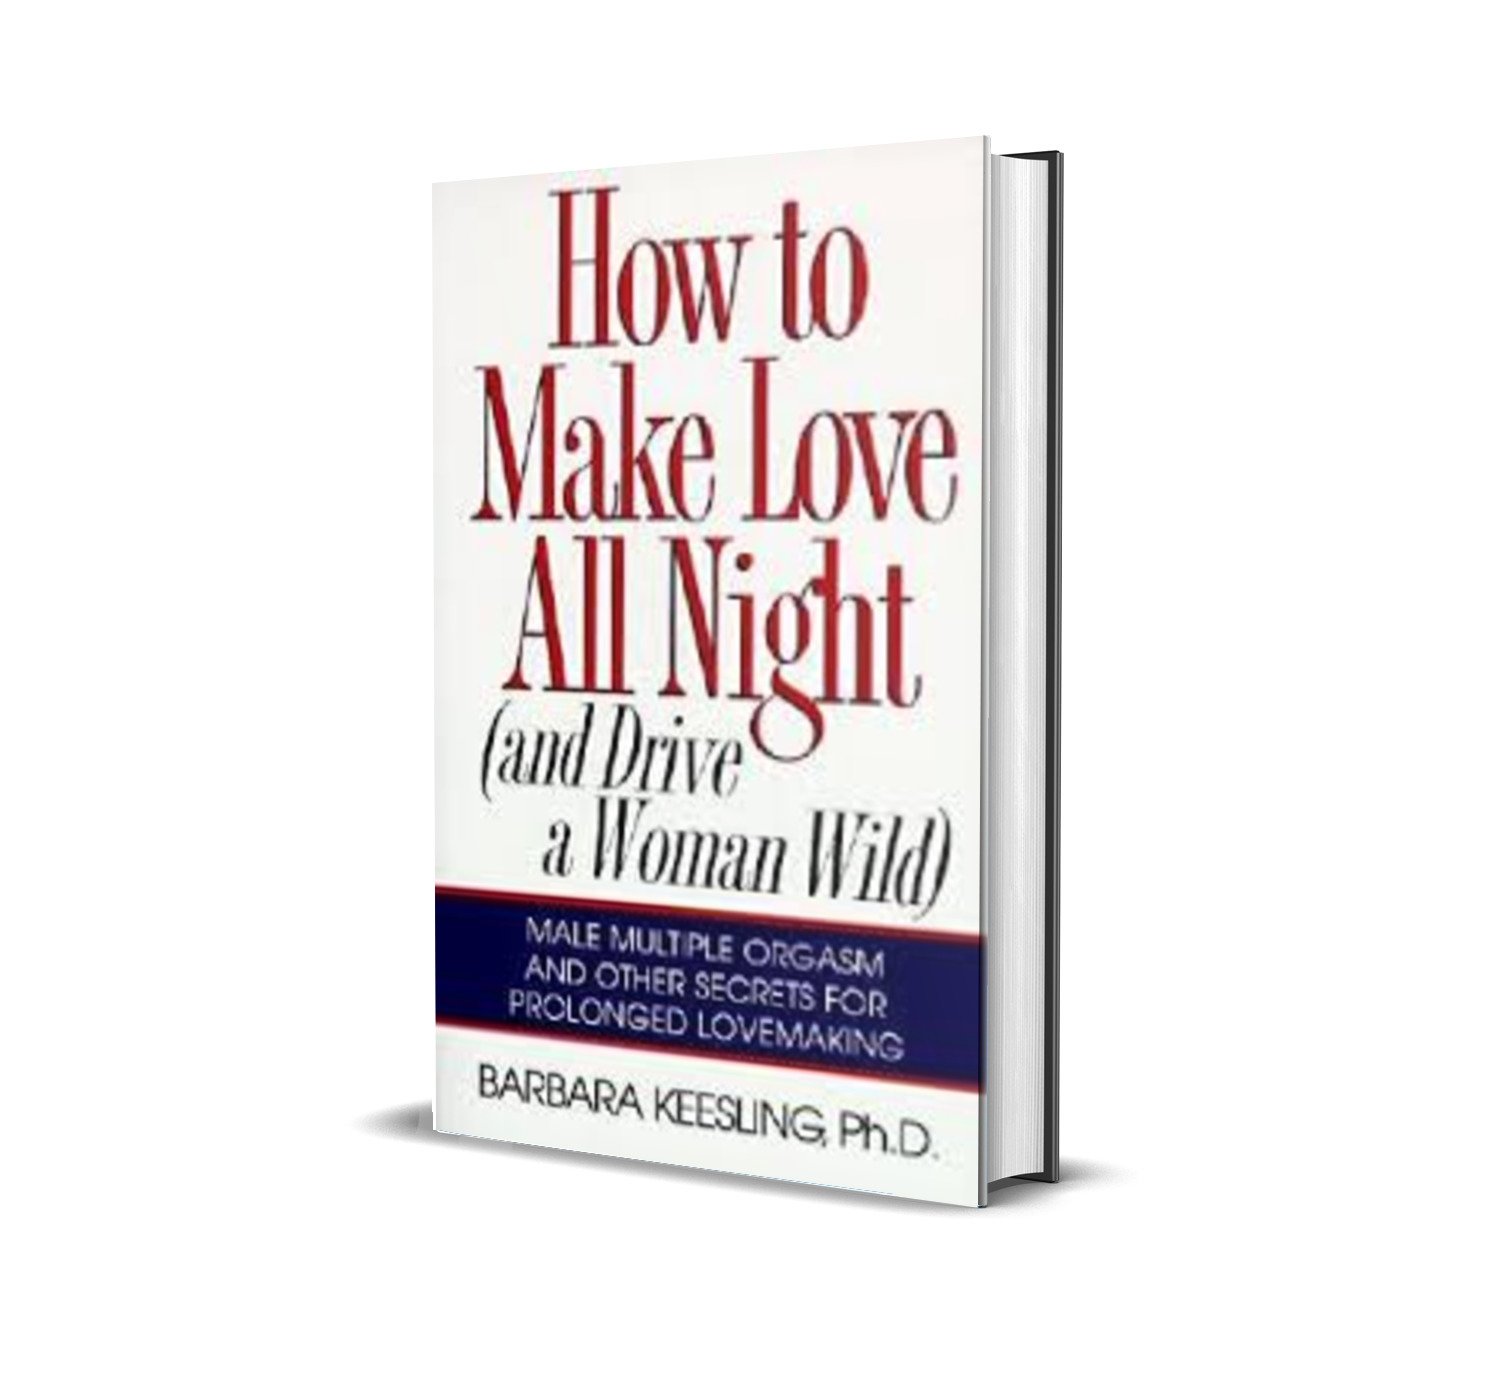 How to Make Love All Night (and Drive Your Woman Wild) - Barbara Keesling